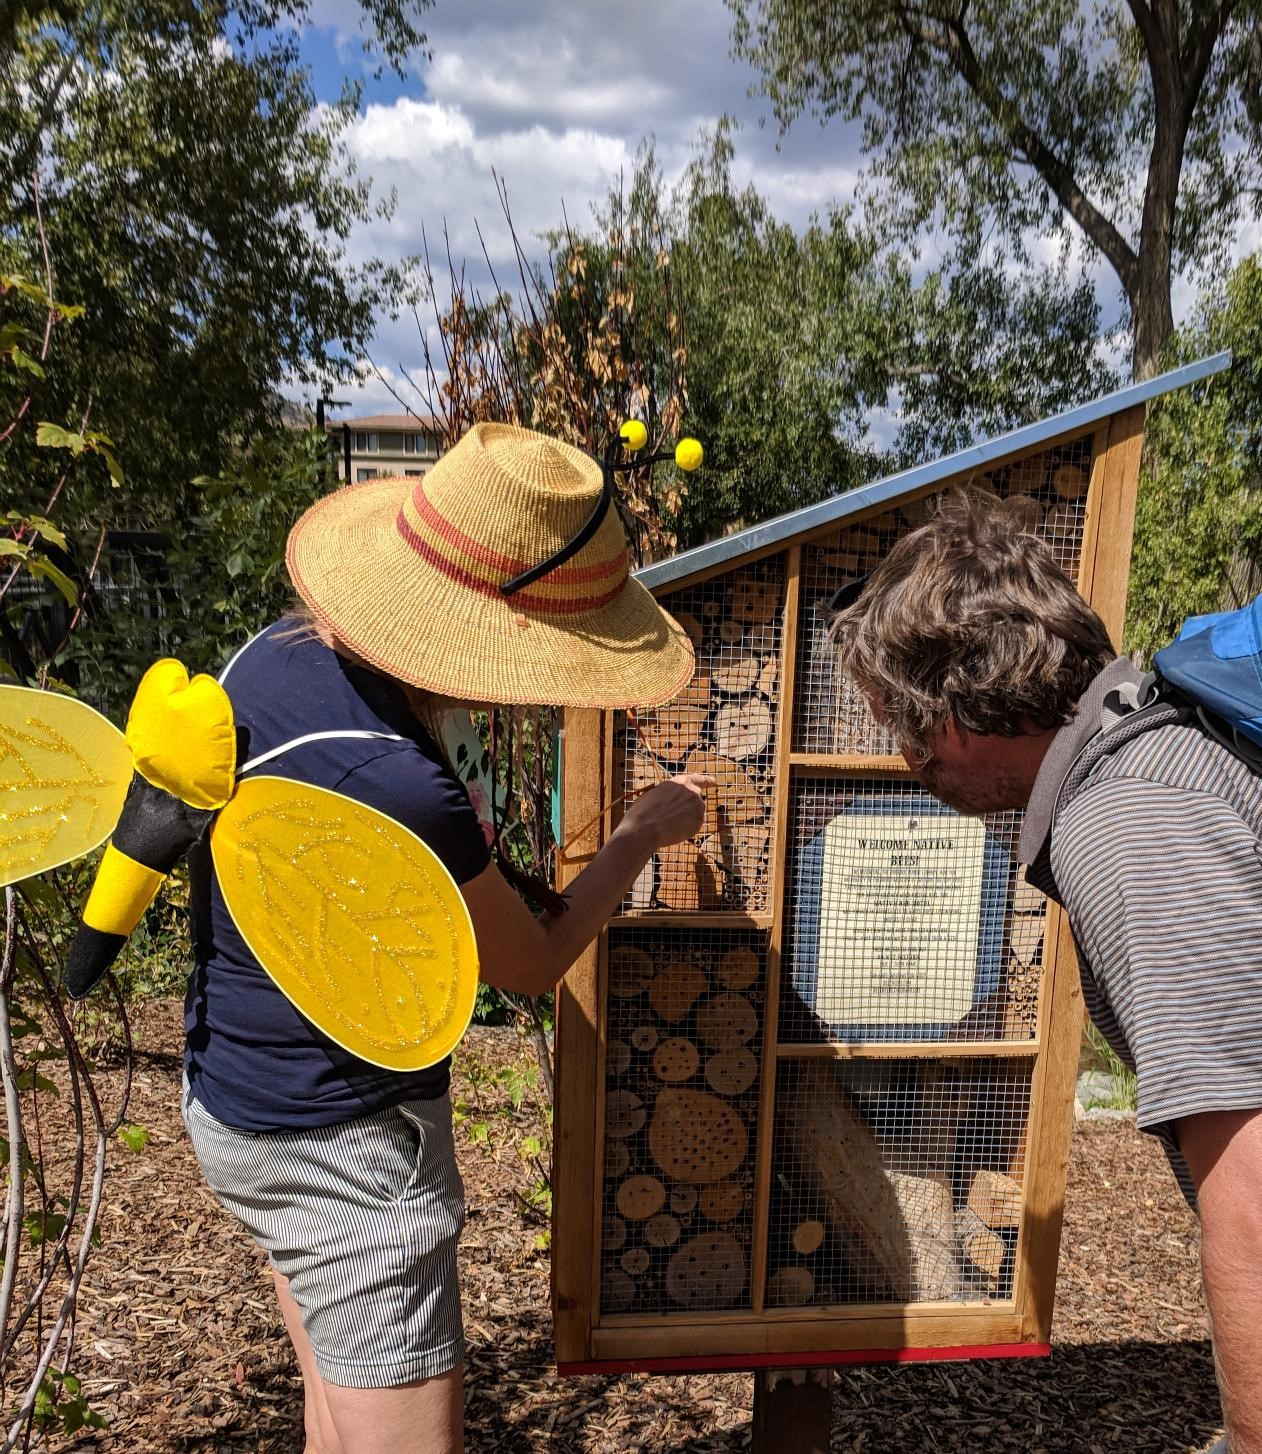 Pollinator Appreciation: Tour de Hive